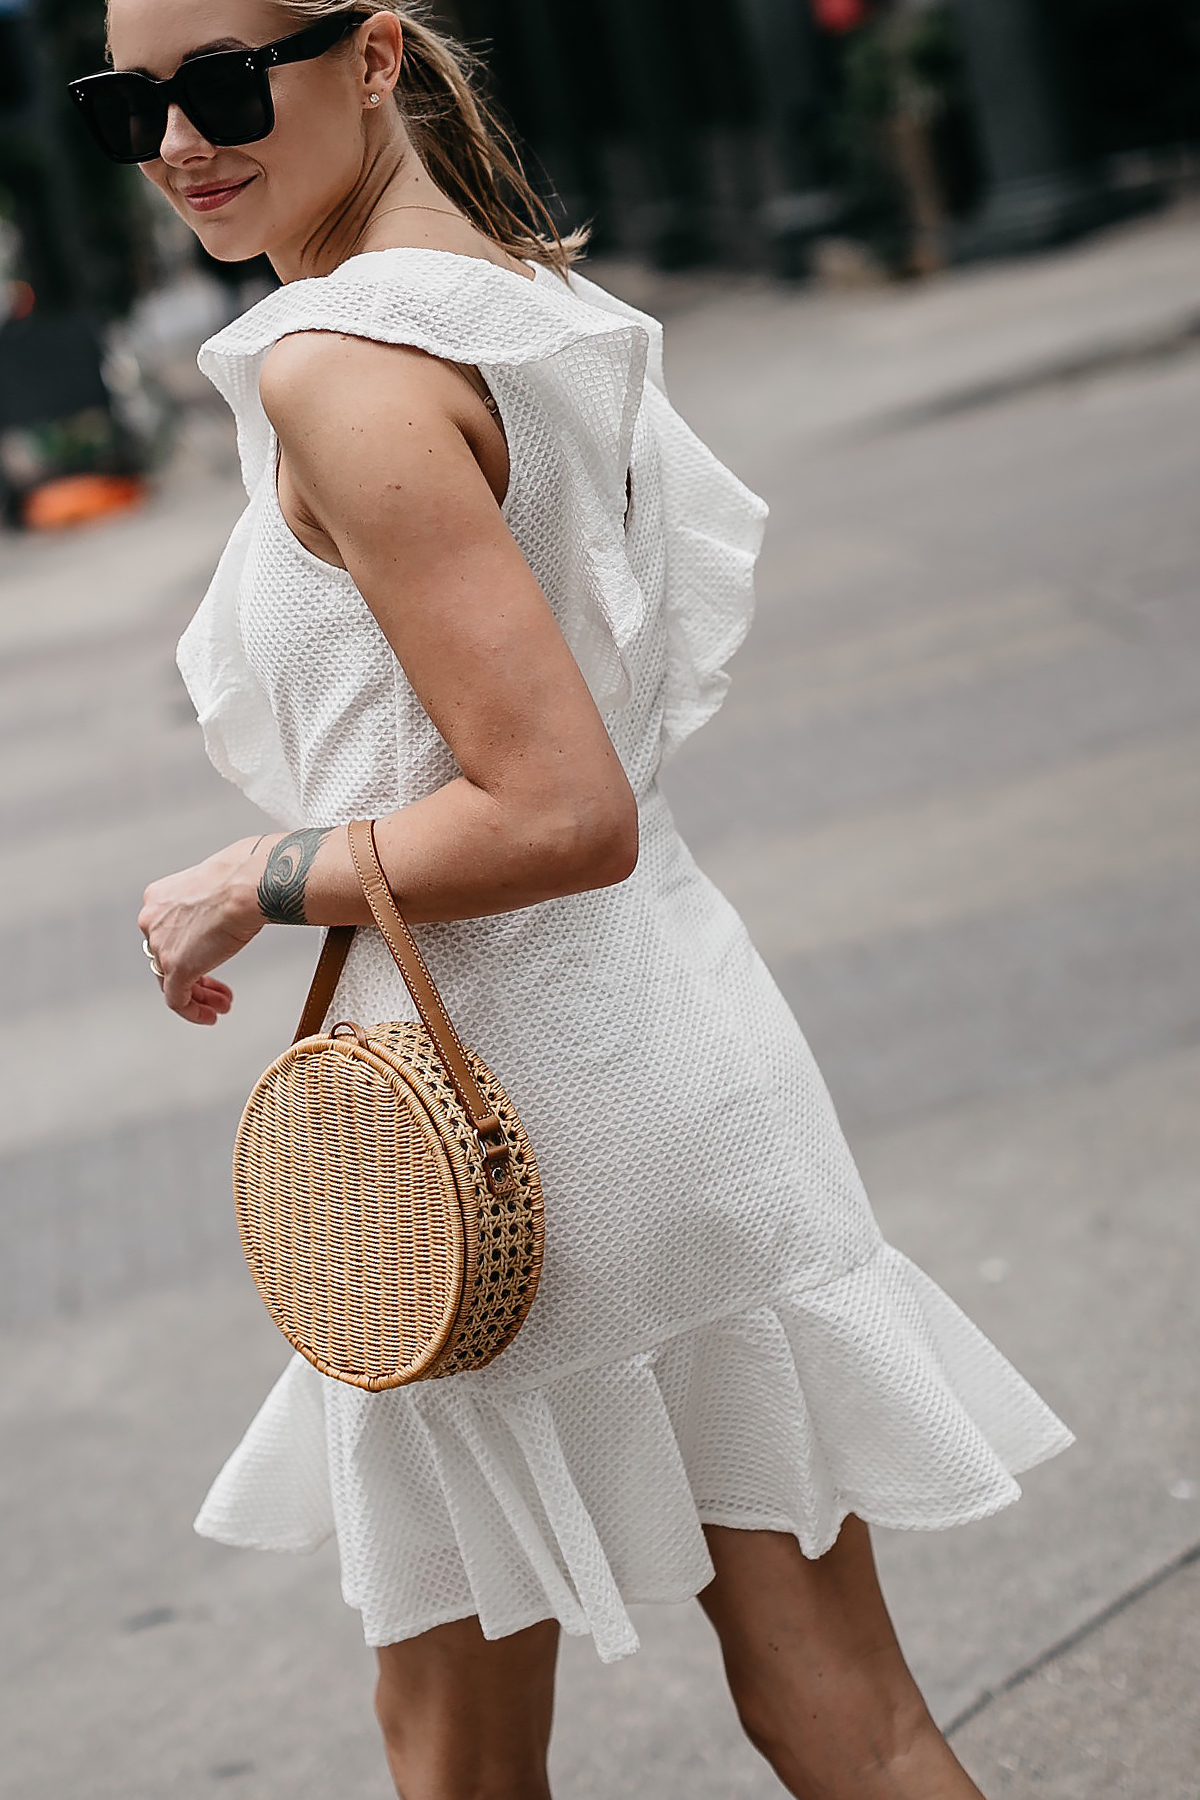 Blonde Woman Wearing Bloomingdales White Eyelet Ruffle Dress Circle Straw Handbag Fashion Jackson Dallas Blogger Fashion Blogger Street Style